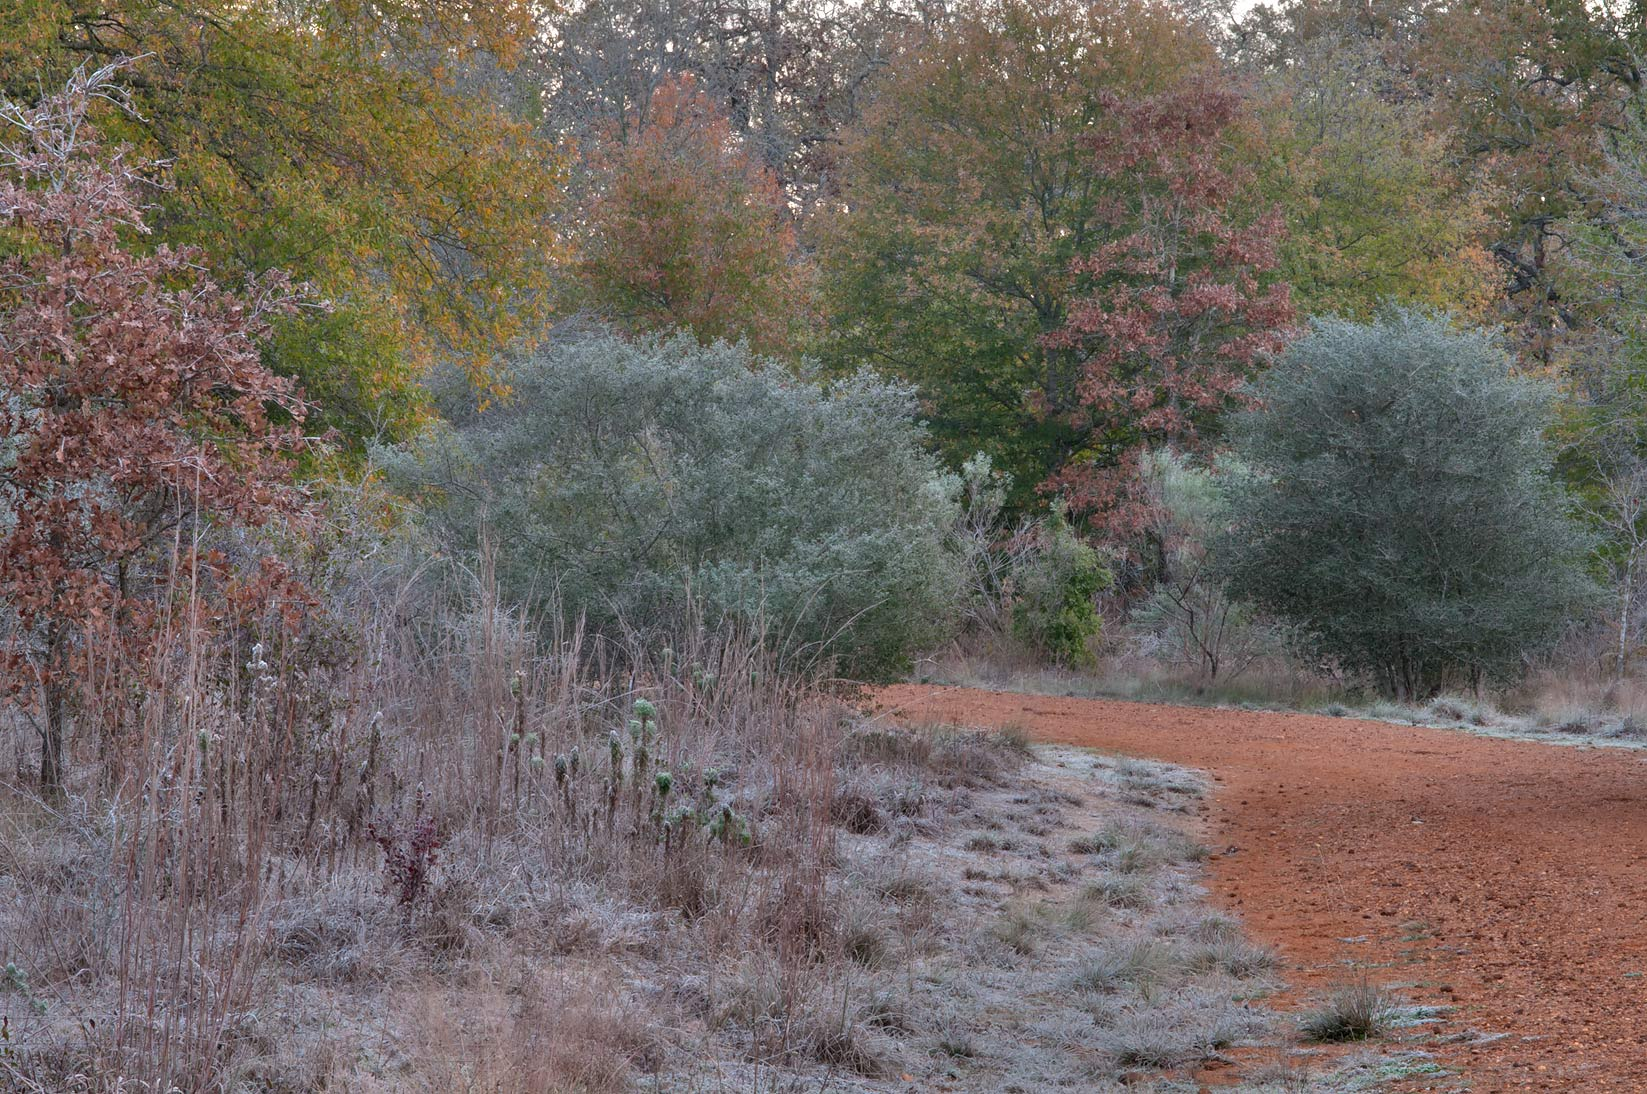 Morning freeze in Lick Creek Park. College Station, Texas